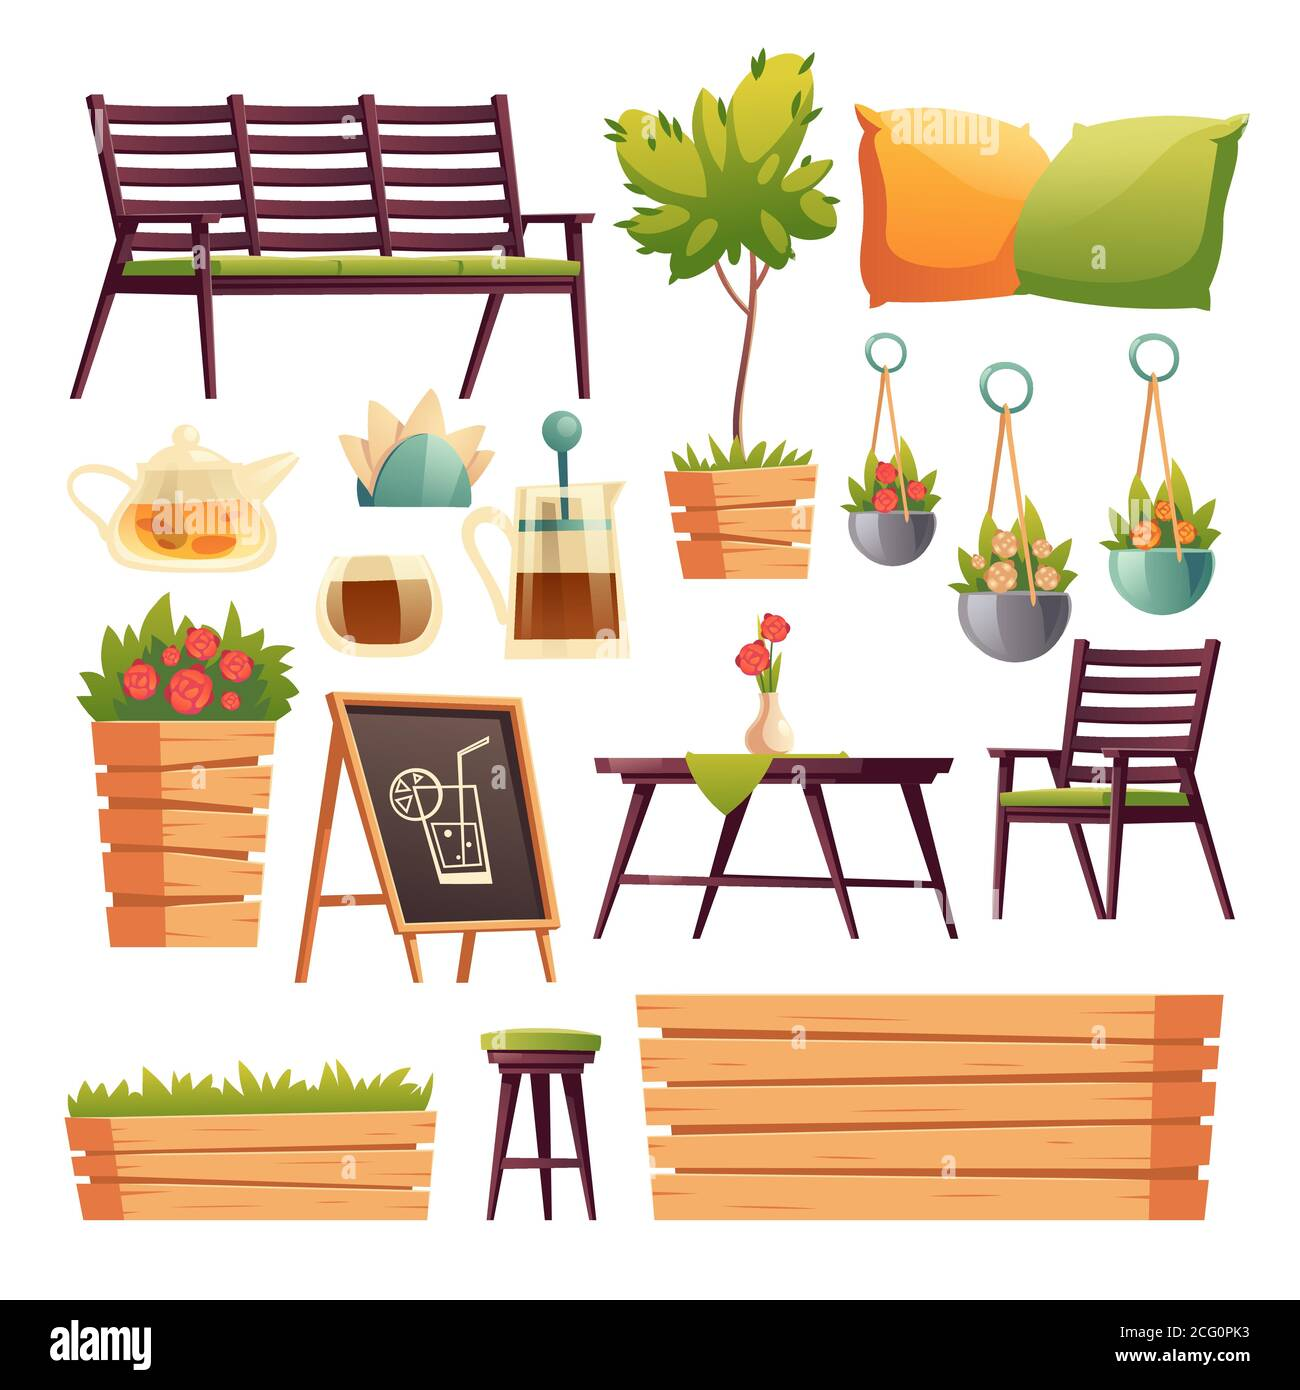 Cafe Or Restaurant Terrace With Wooden Bar Counter Seats Flowers And Plants Vector Cartoon Set Of